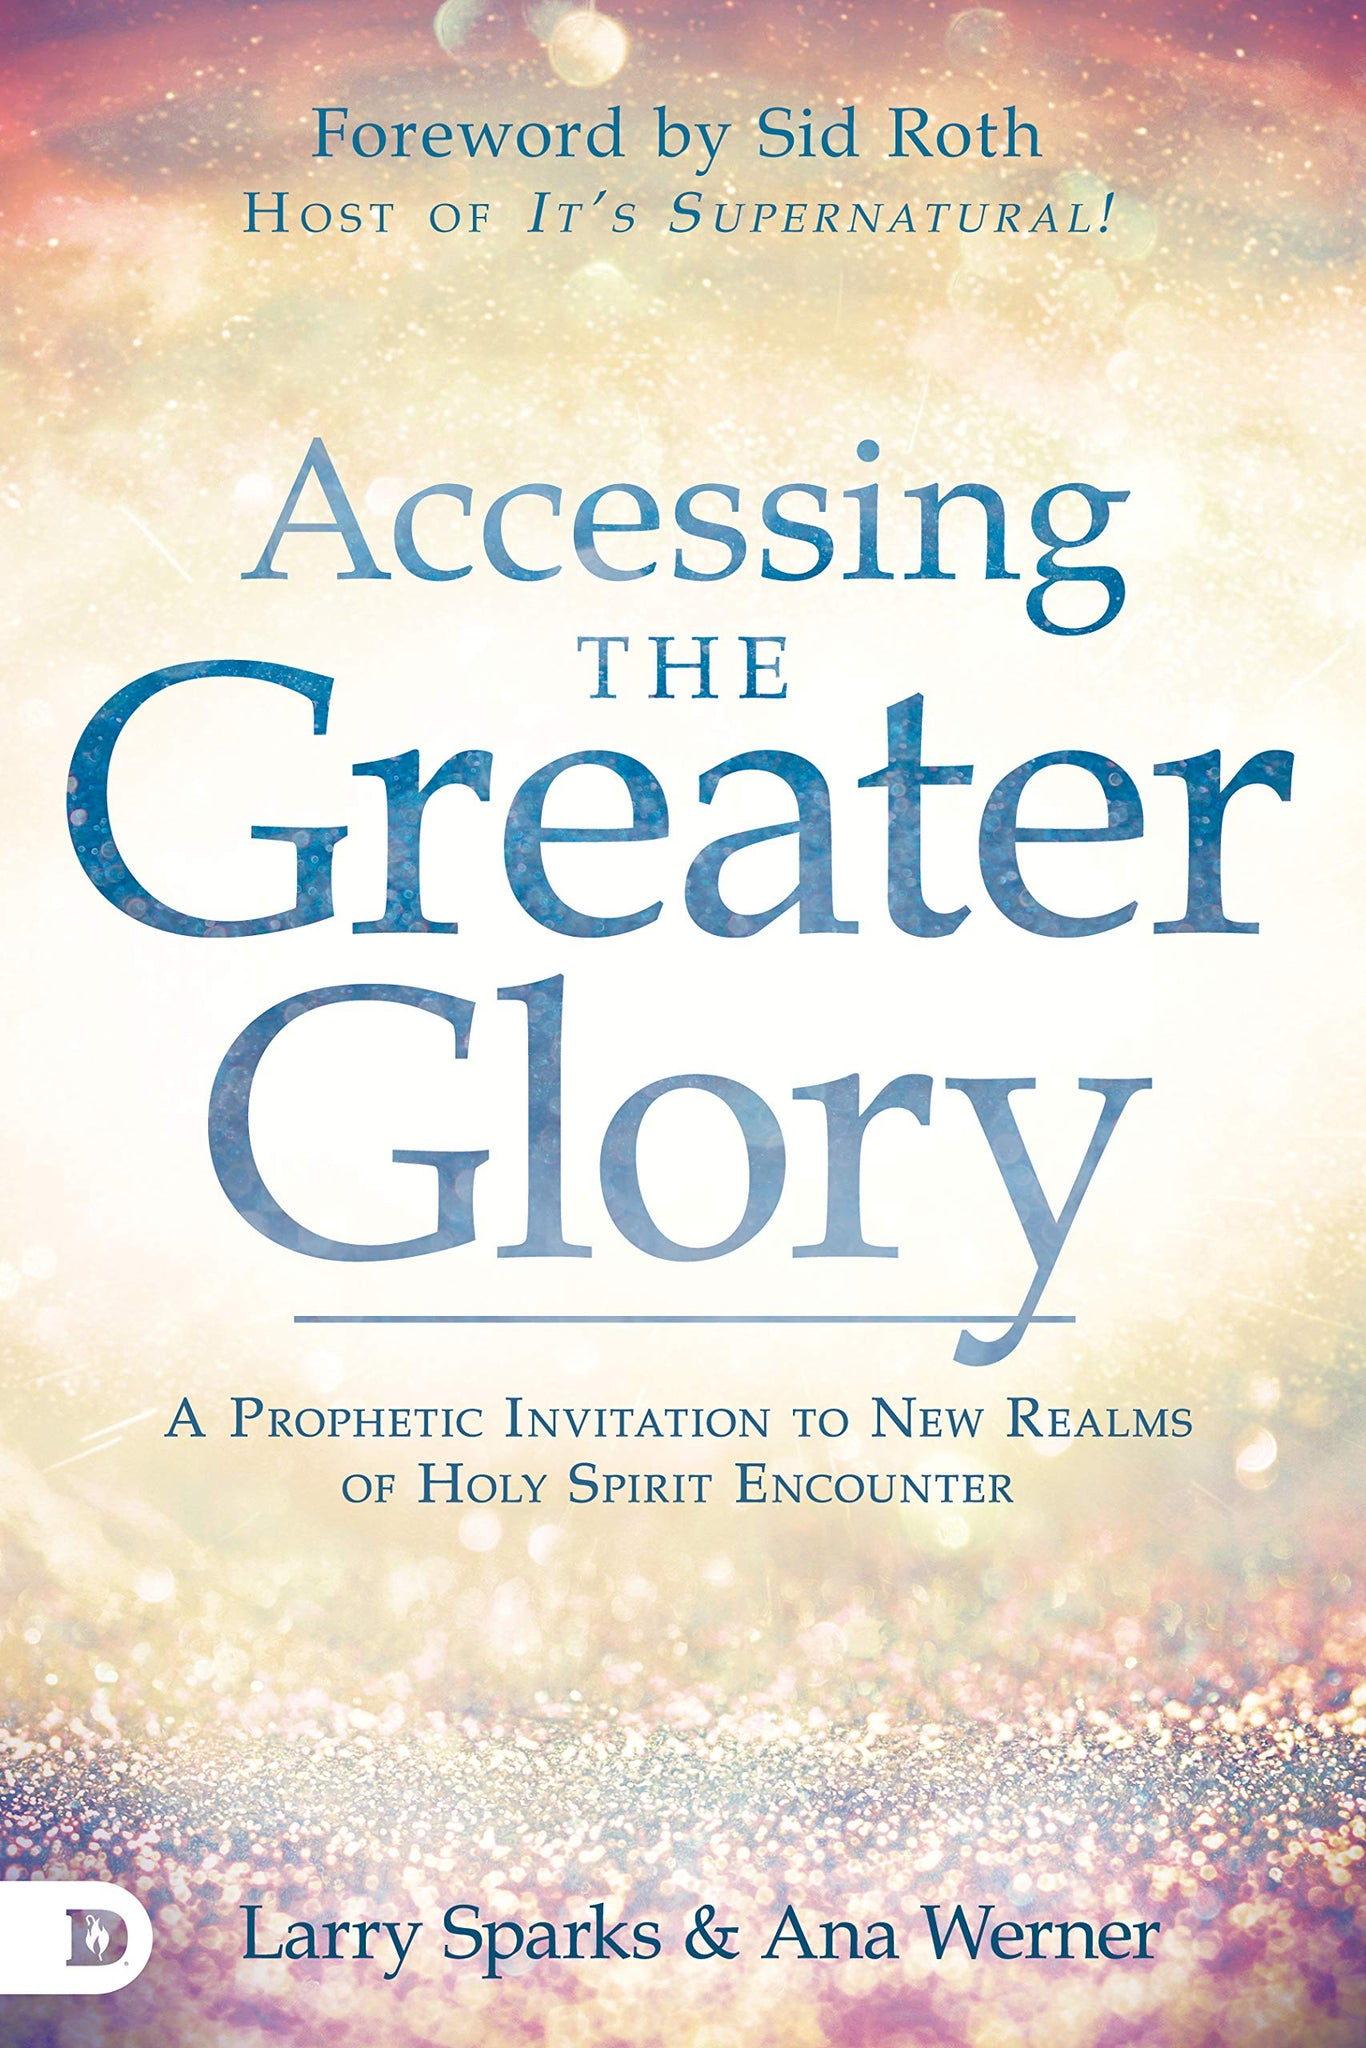 Accessing the Greater Glory: A Prophetic Invitation to New Realms of Holy Spirit Encounter